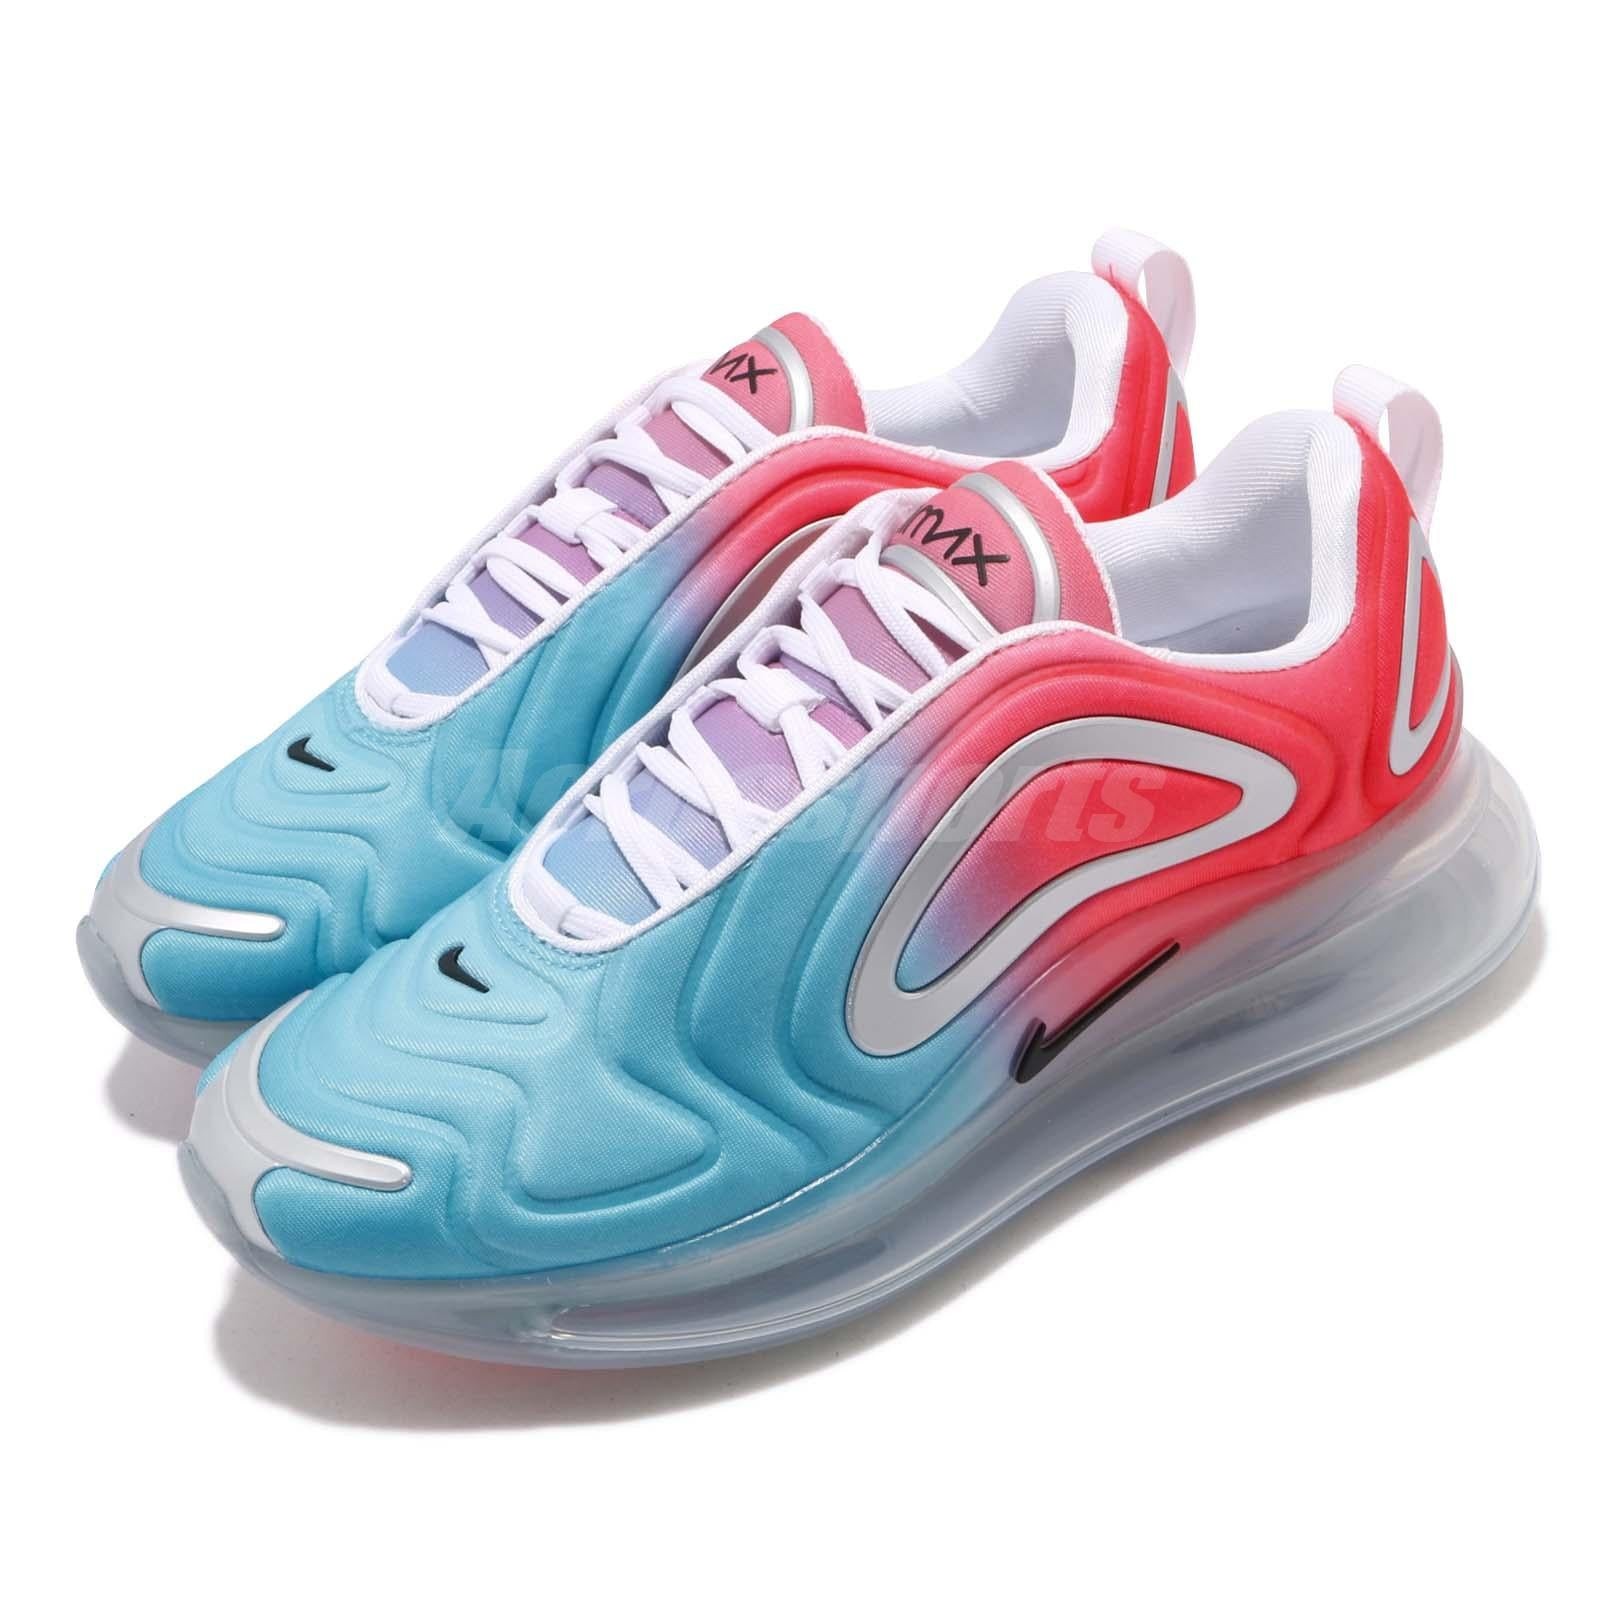 cuenta República comerciante  Nike Wmns Air Max 720 'Pink Sea' - Waves Never Die